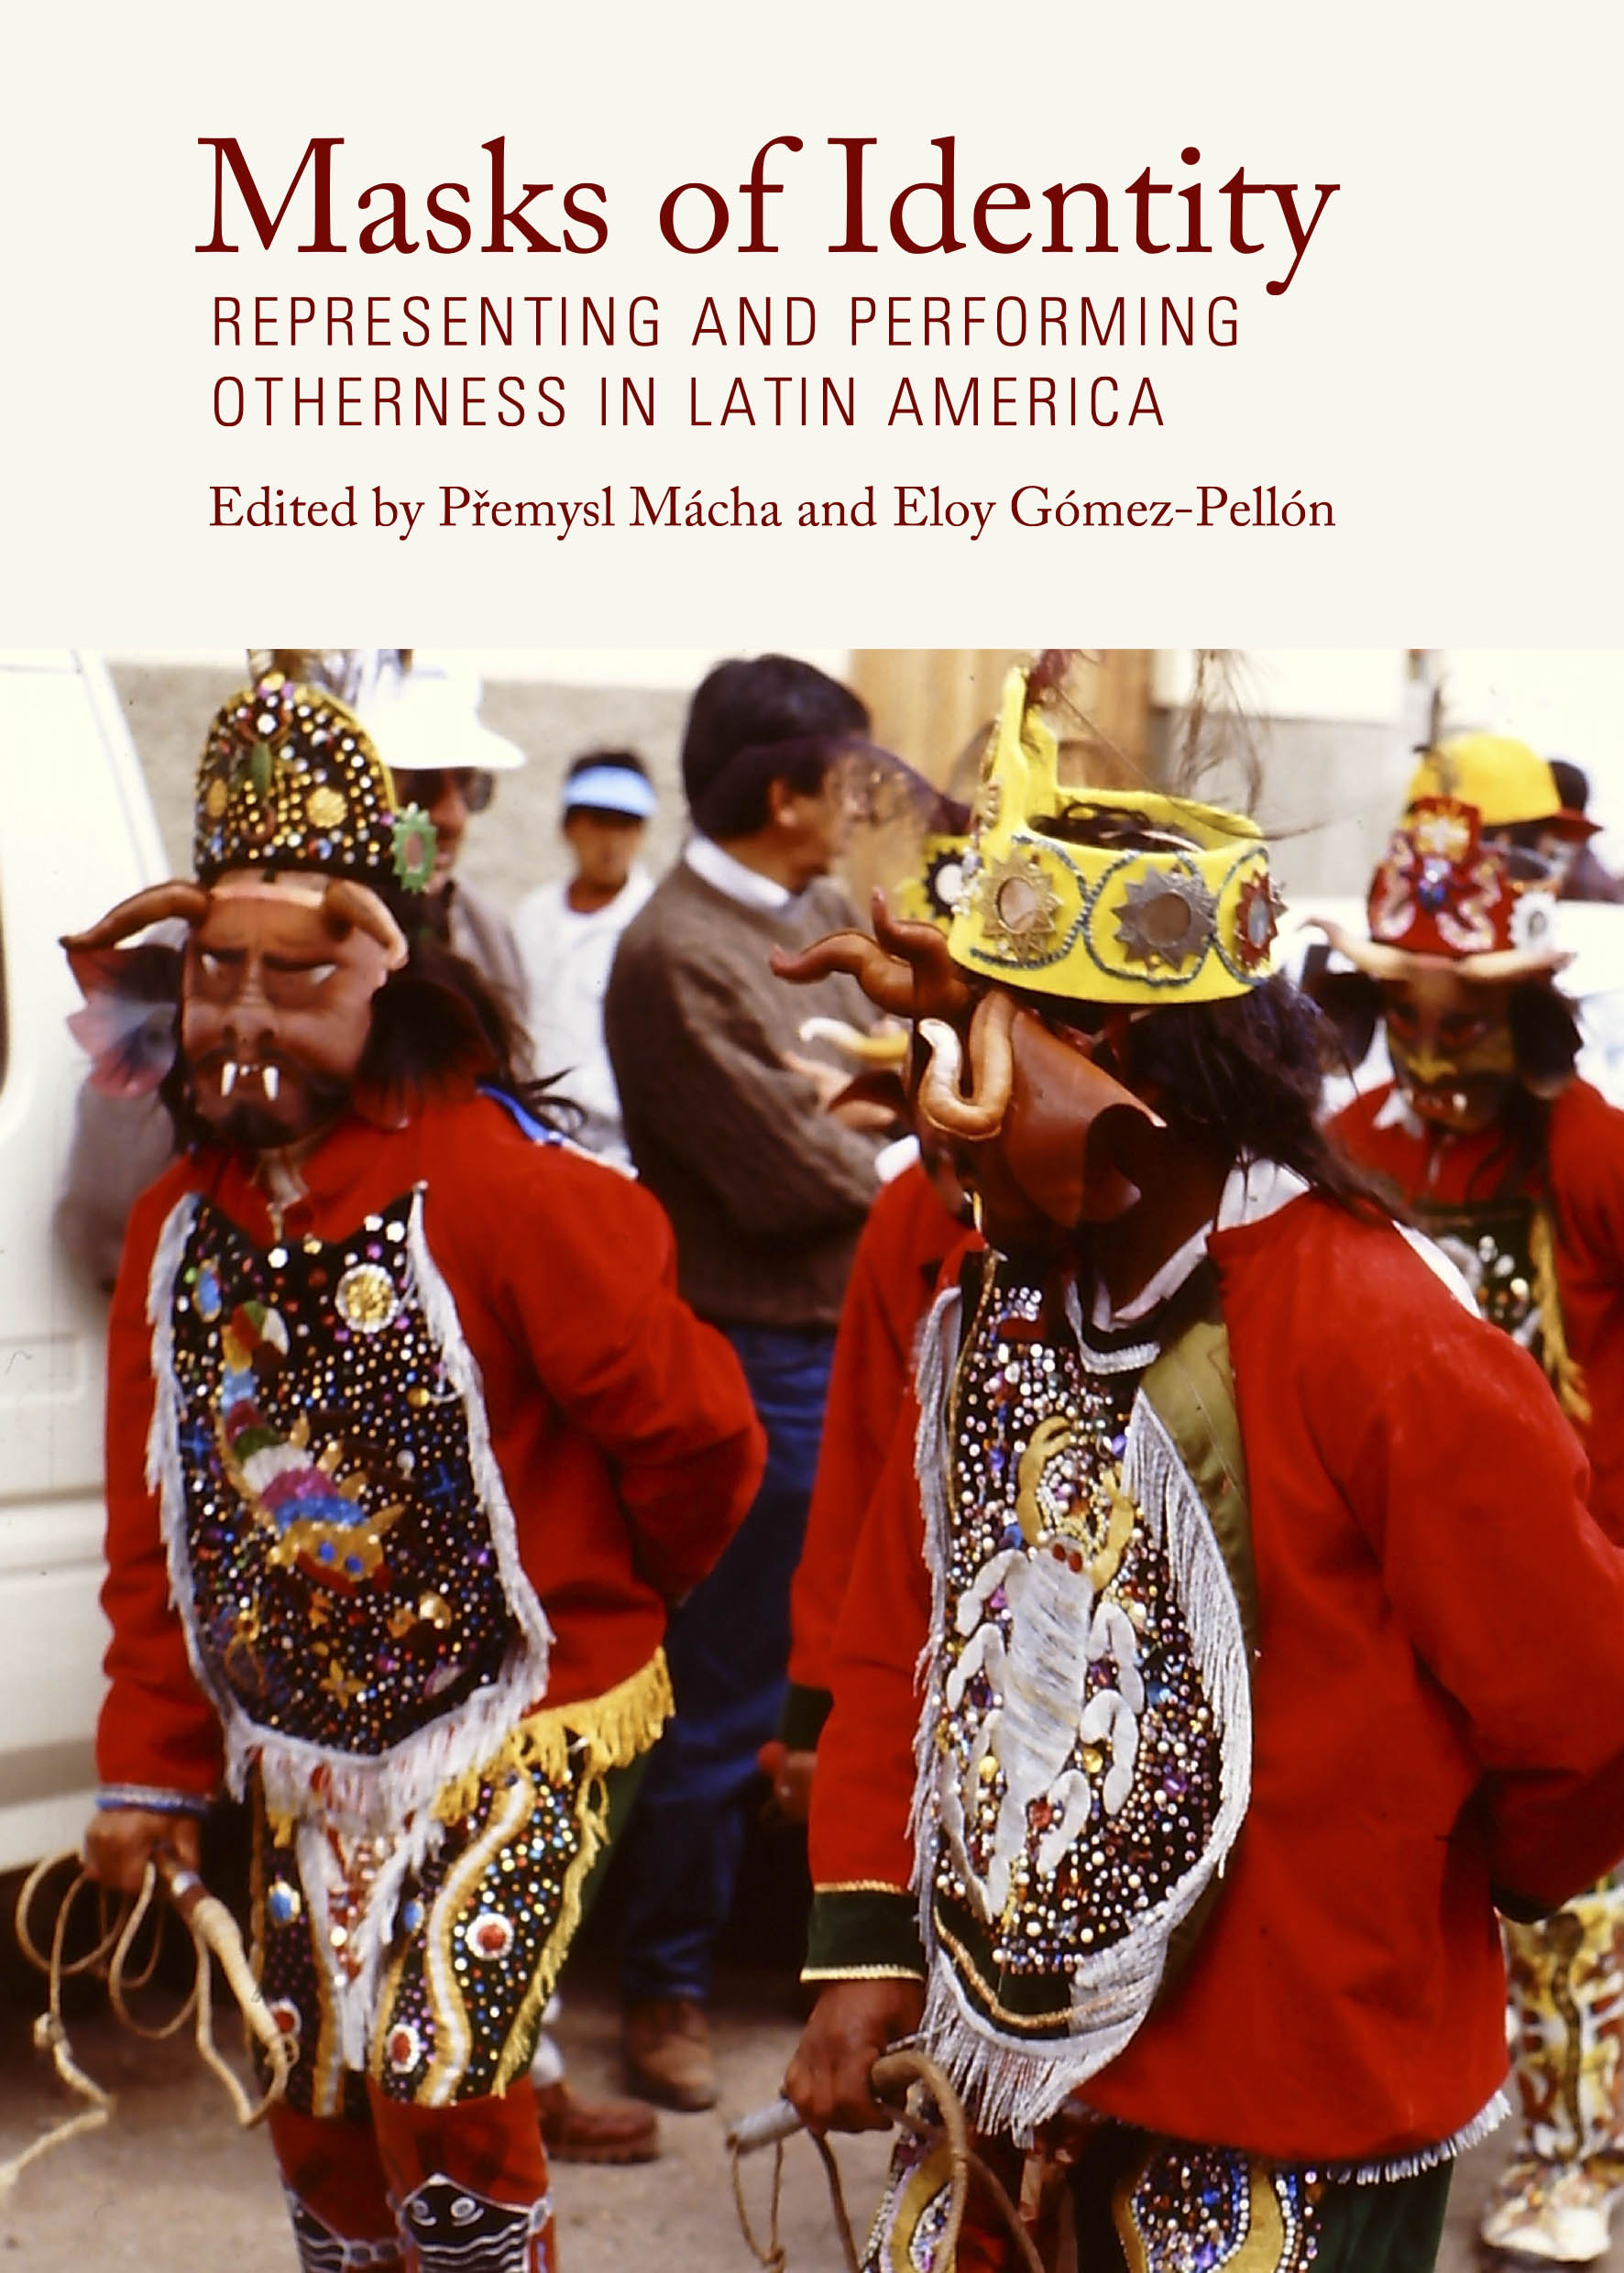 Masks of Identity: Representing and Performing Otherness in Latin America